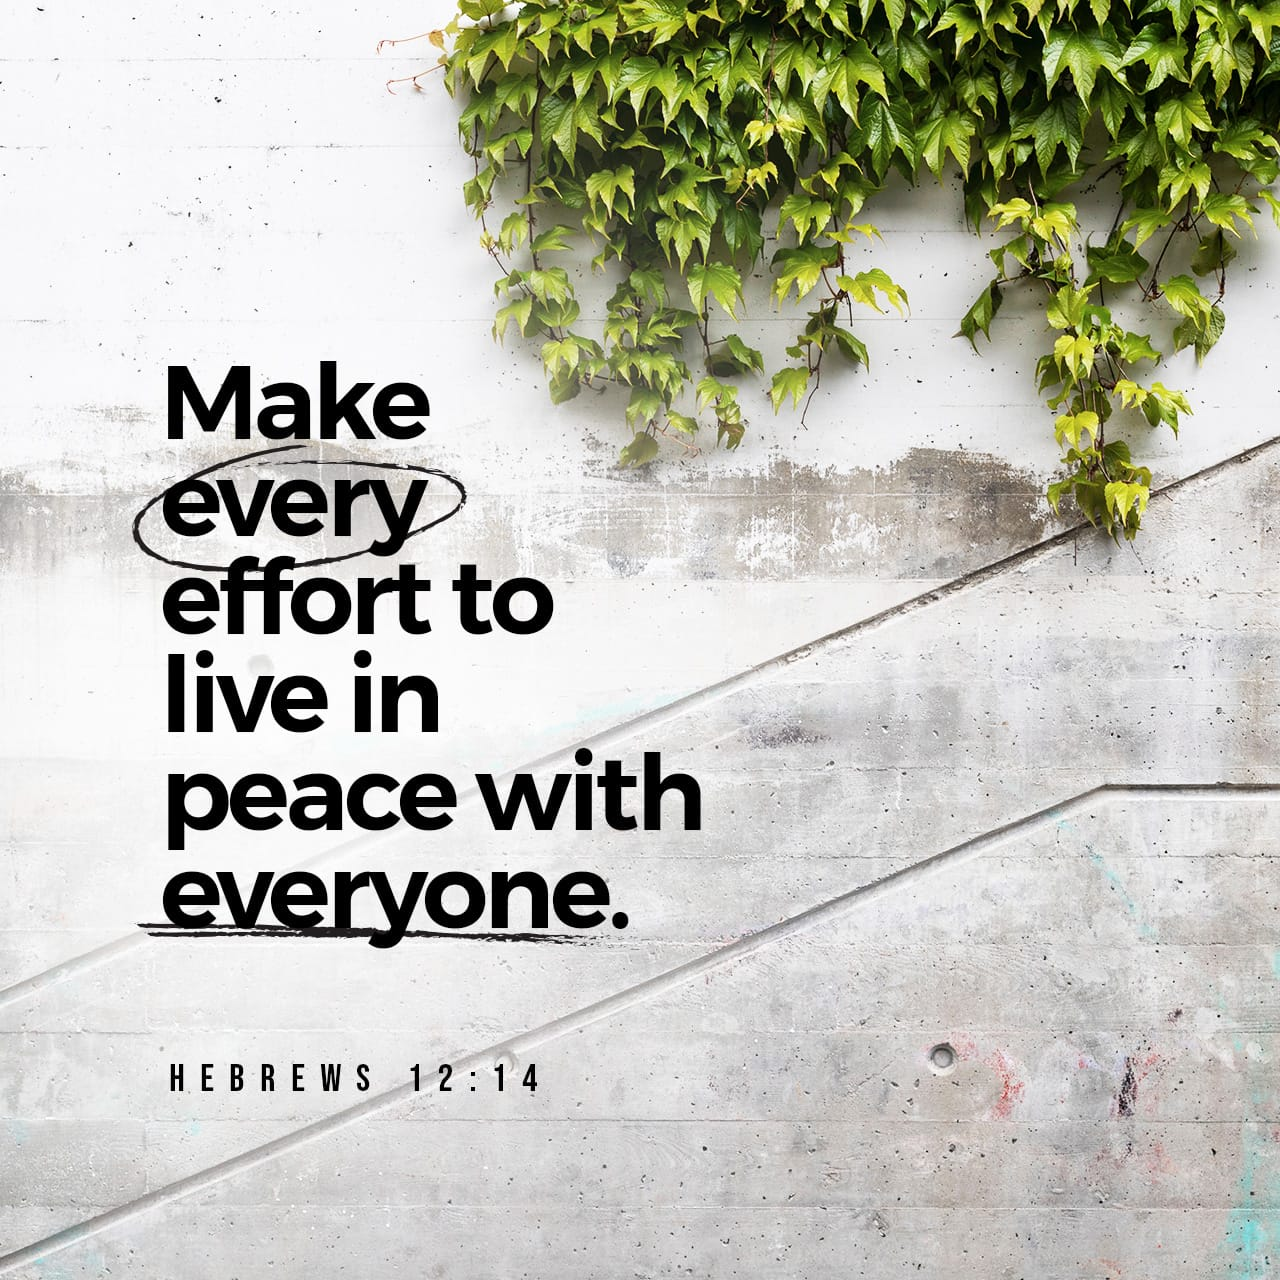 Hebrews 12:14 Follow peace with all men, and holiness, without which no man shall see the Lord | King James Version (KJV) | Download The Bible App Now